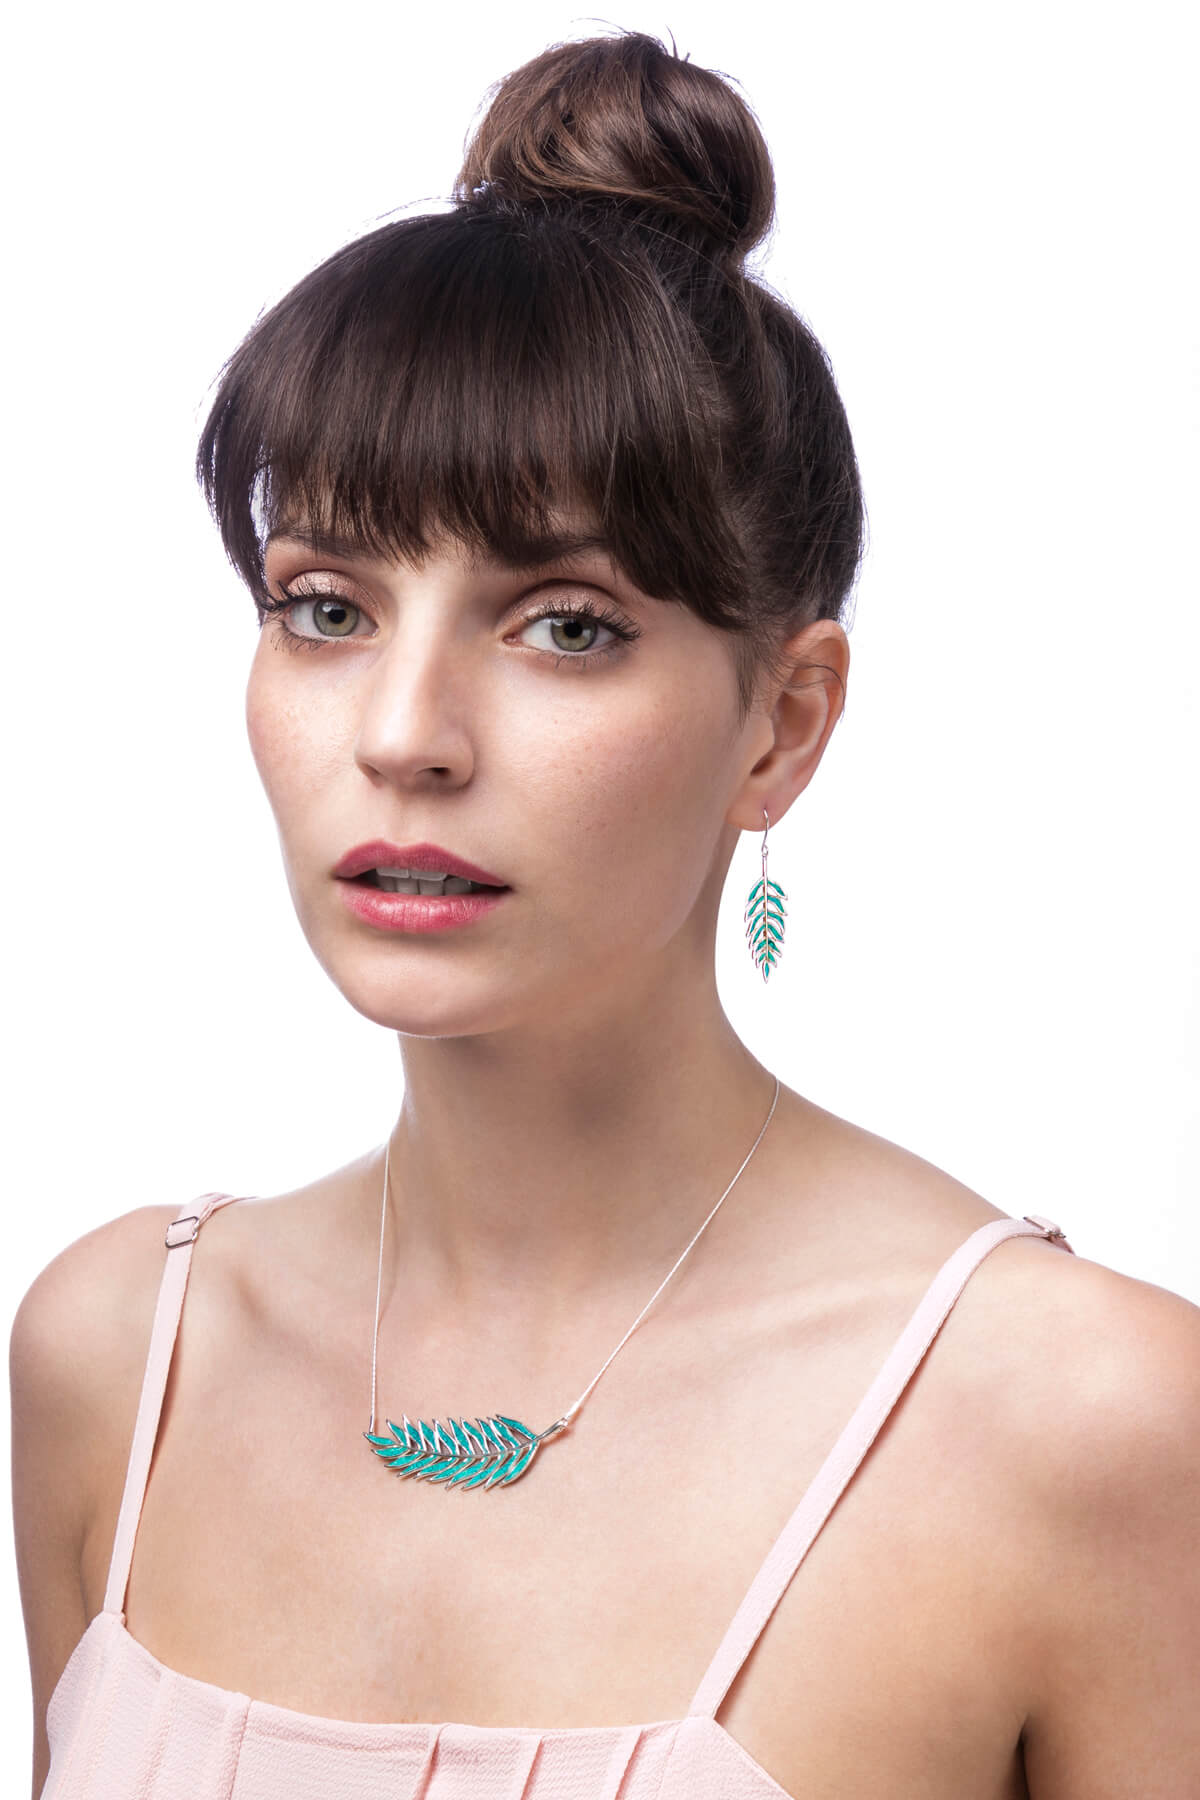 handmade silver palm leaf earrings & necklace with turquoise pattern